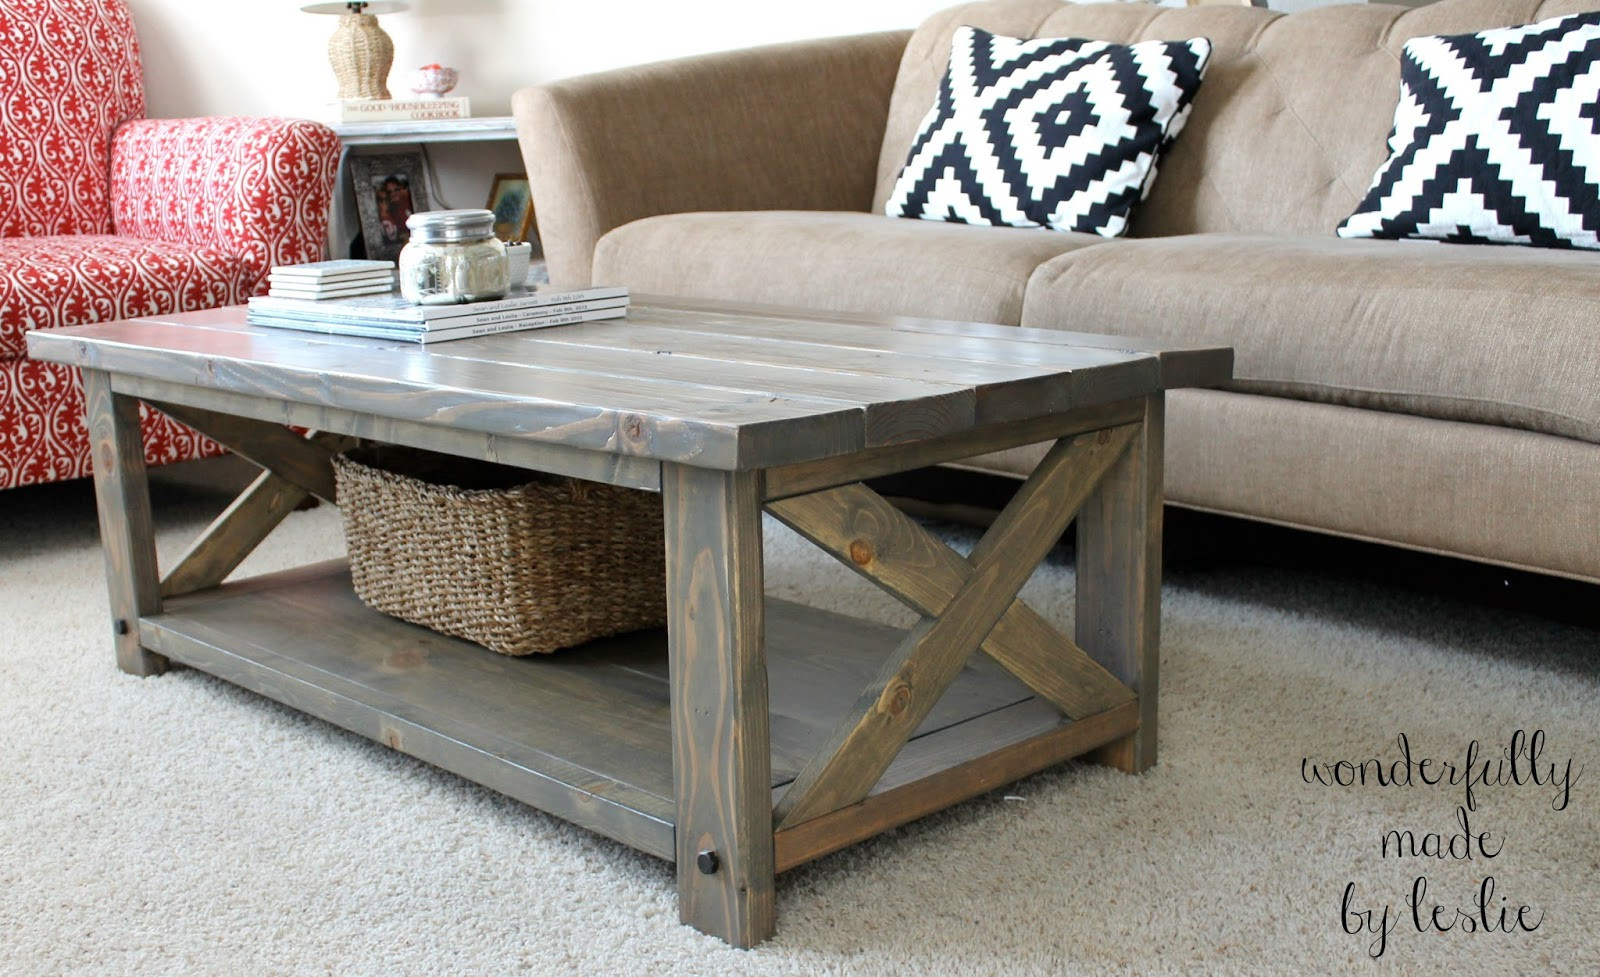 DIY Coffee Tables Plans  Wonderfully Made Finished DIY Coffee Table